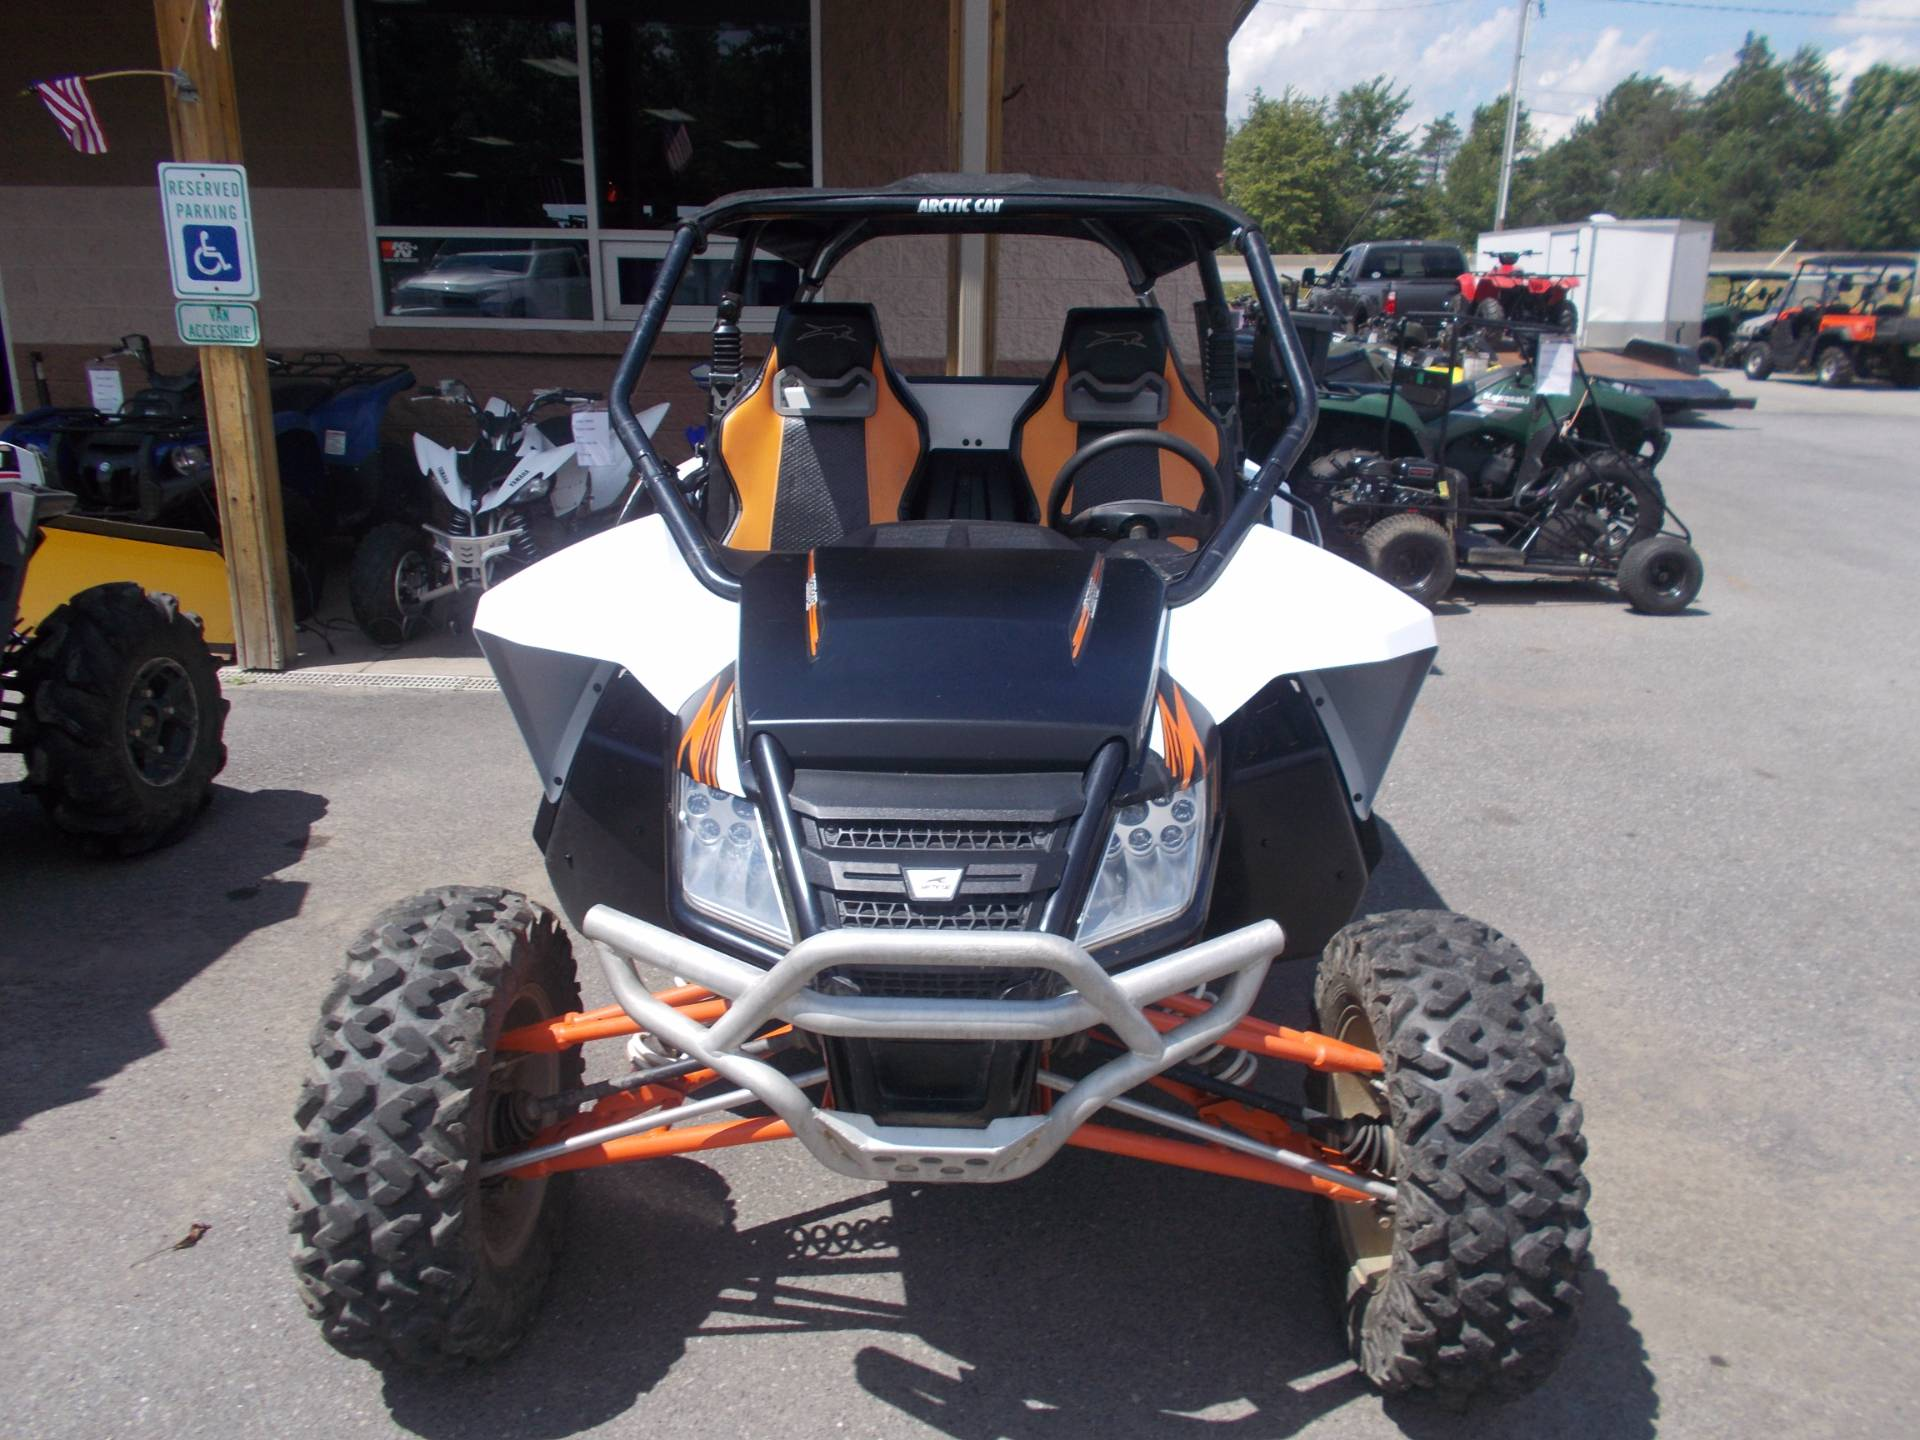 2013 Arctic Cat Wildcat™ 1000 in Ebensburg, Pennsylvania